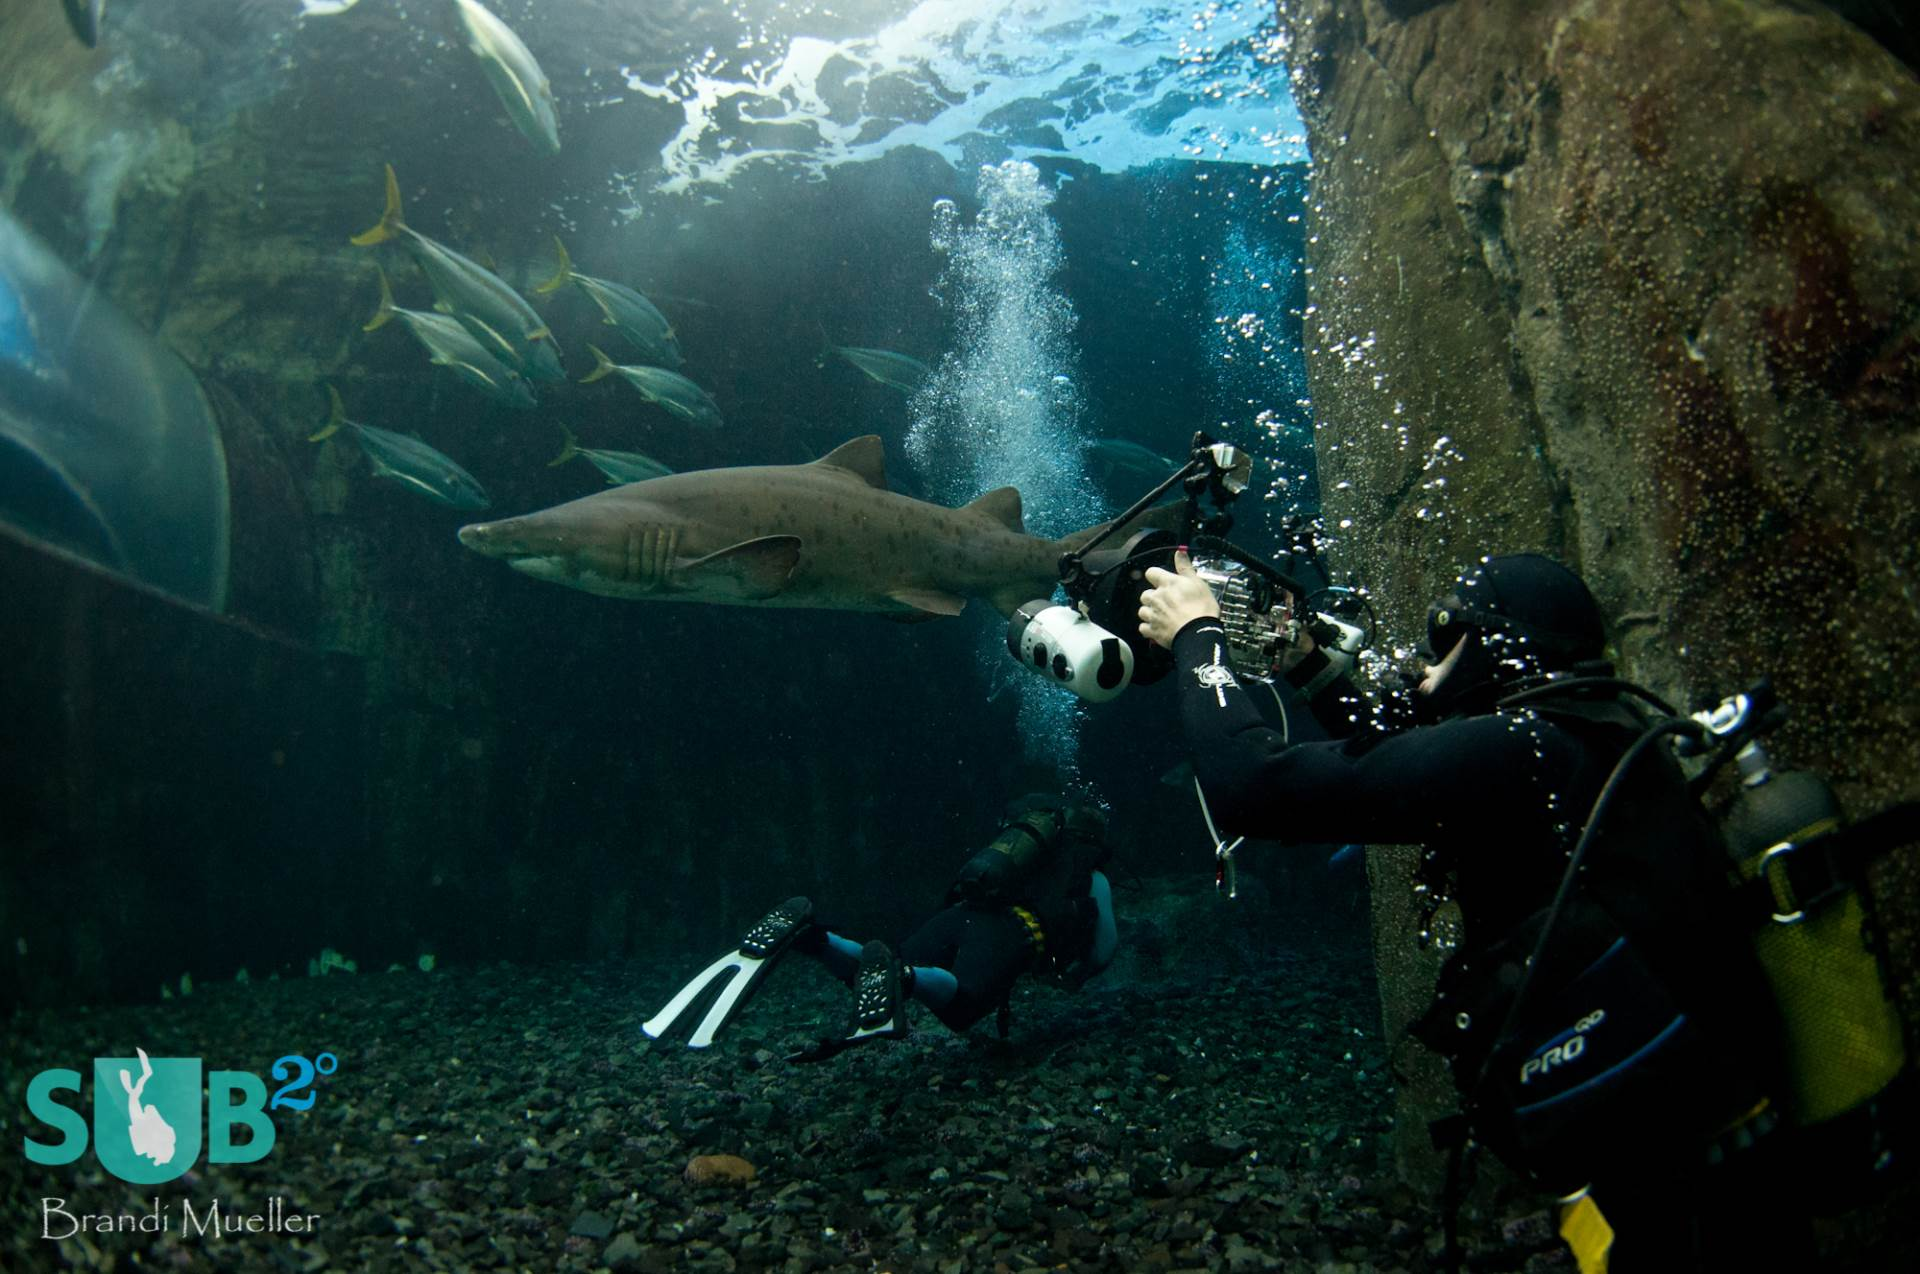 A photographer takes a shot of the large ragged-tooth shark in the Predator Exhibit.